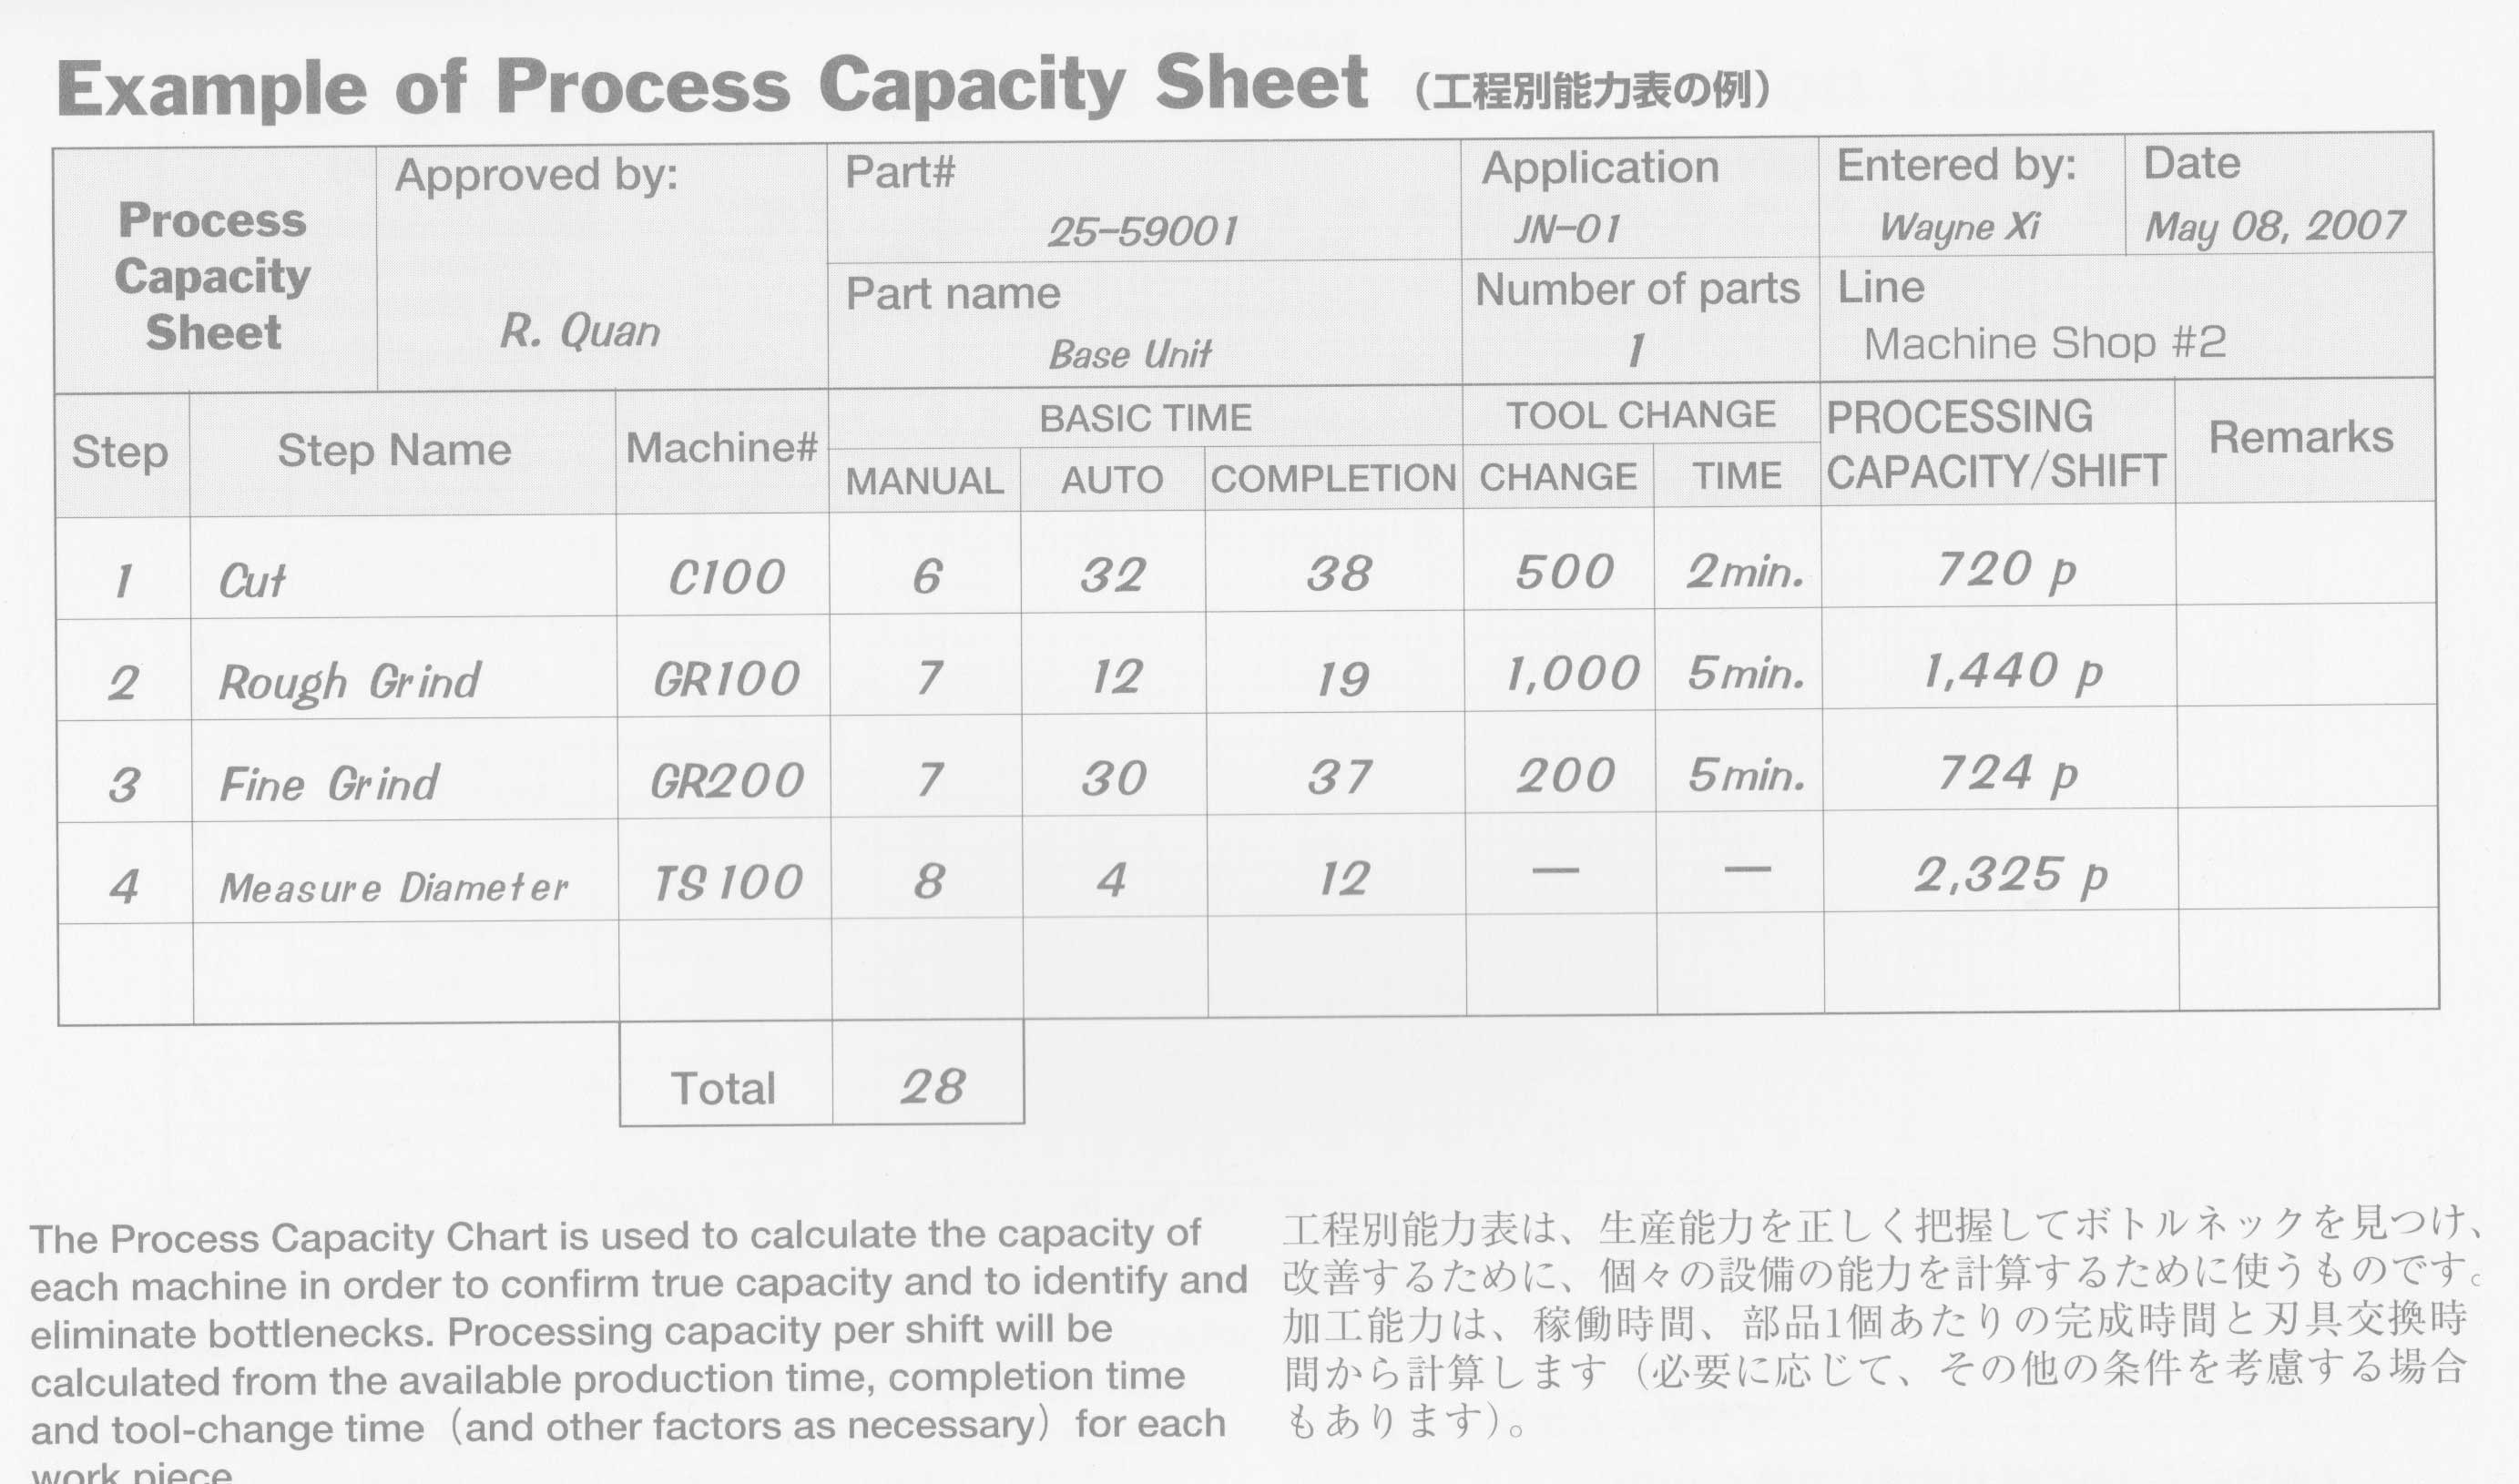 Process Capacity Sheeet